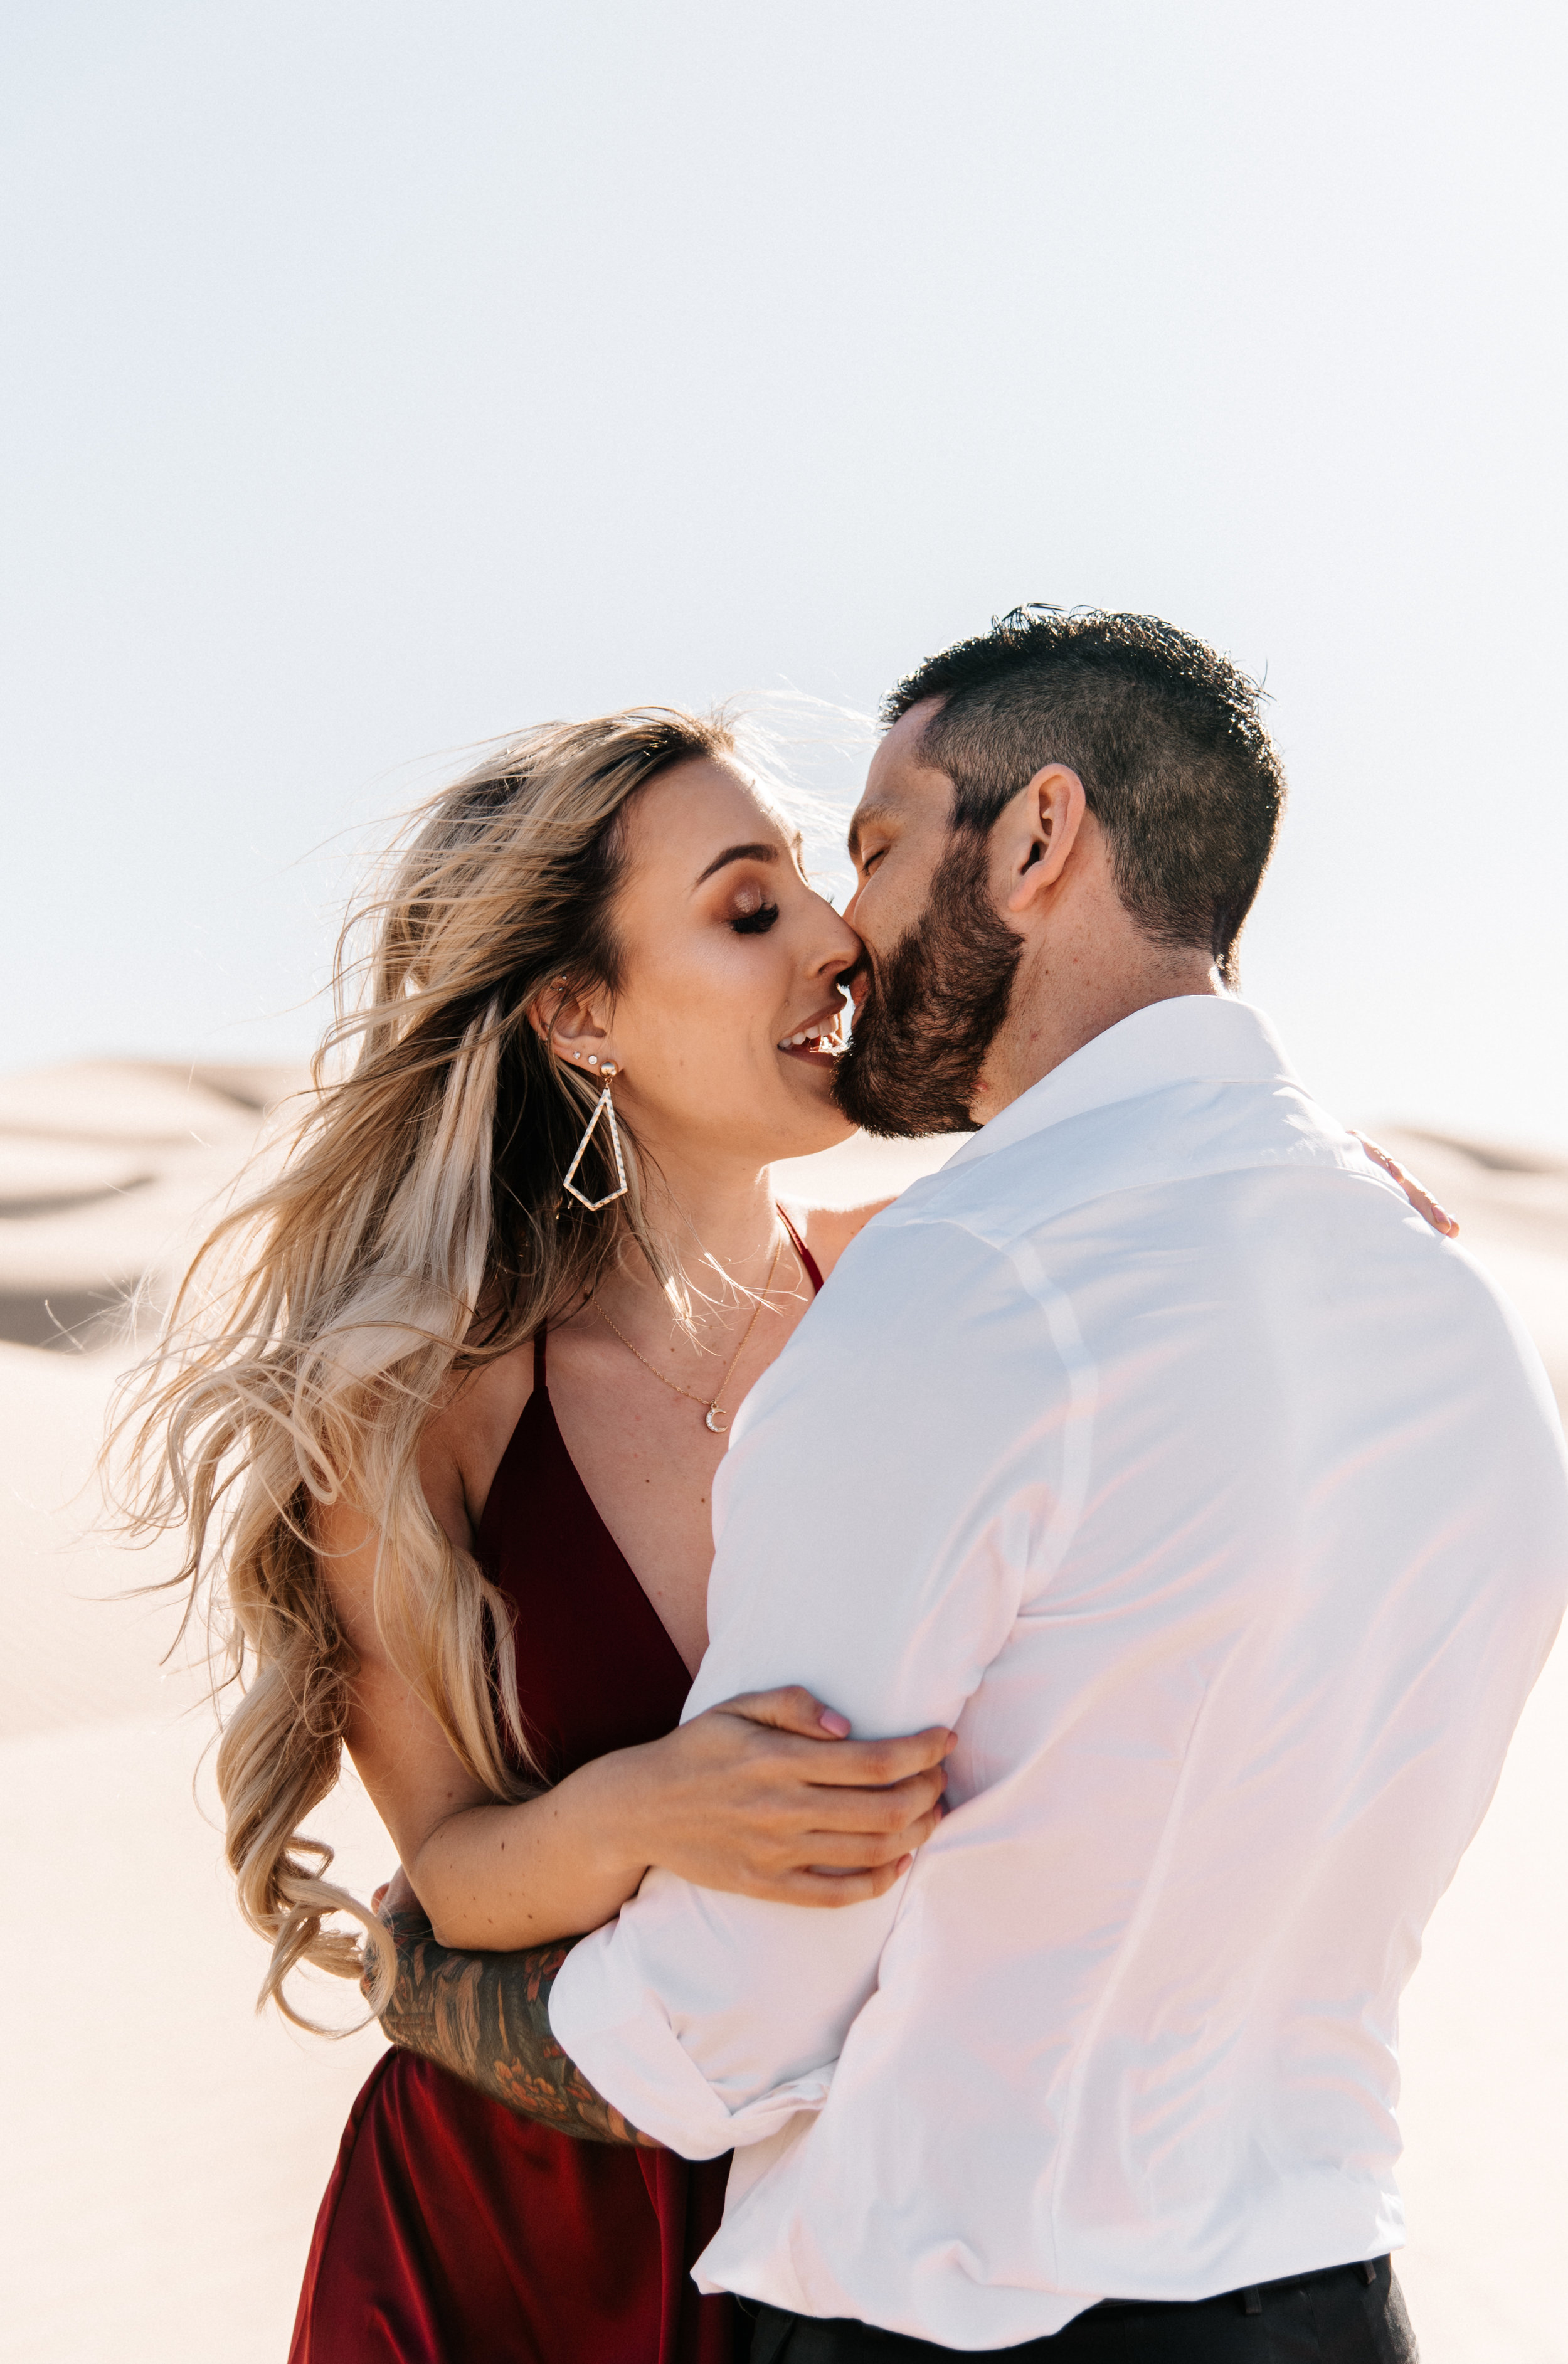 SamErica Studios - Modern San Diego Engagement Photographer - Adventure Engagement Session in Glamis Sand Dunes California-18.jpg